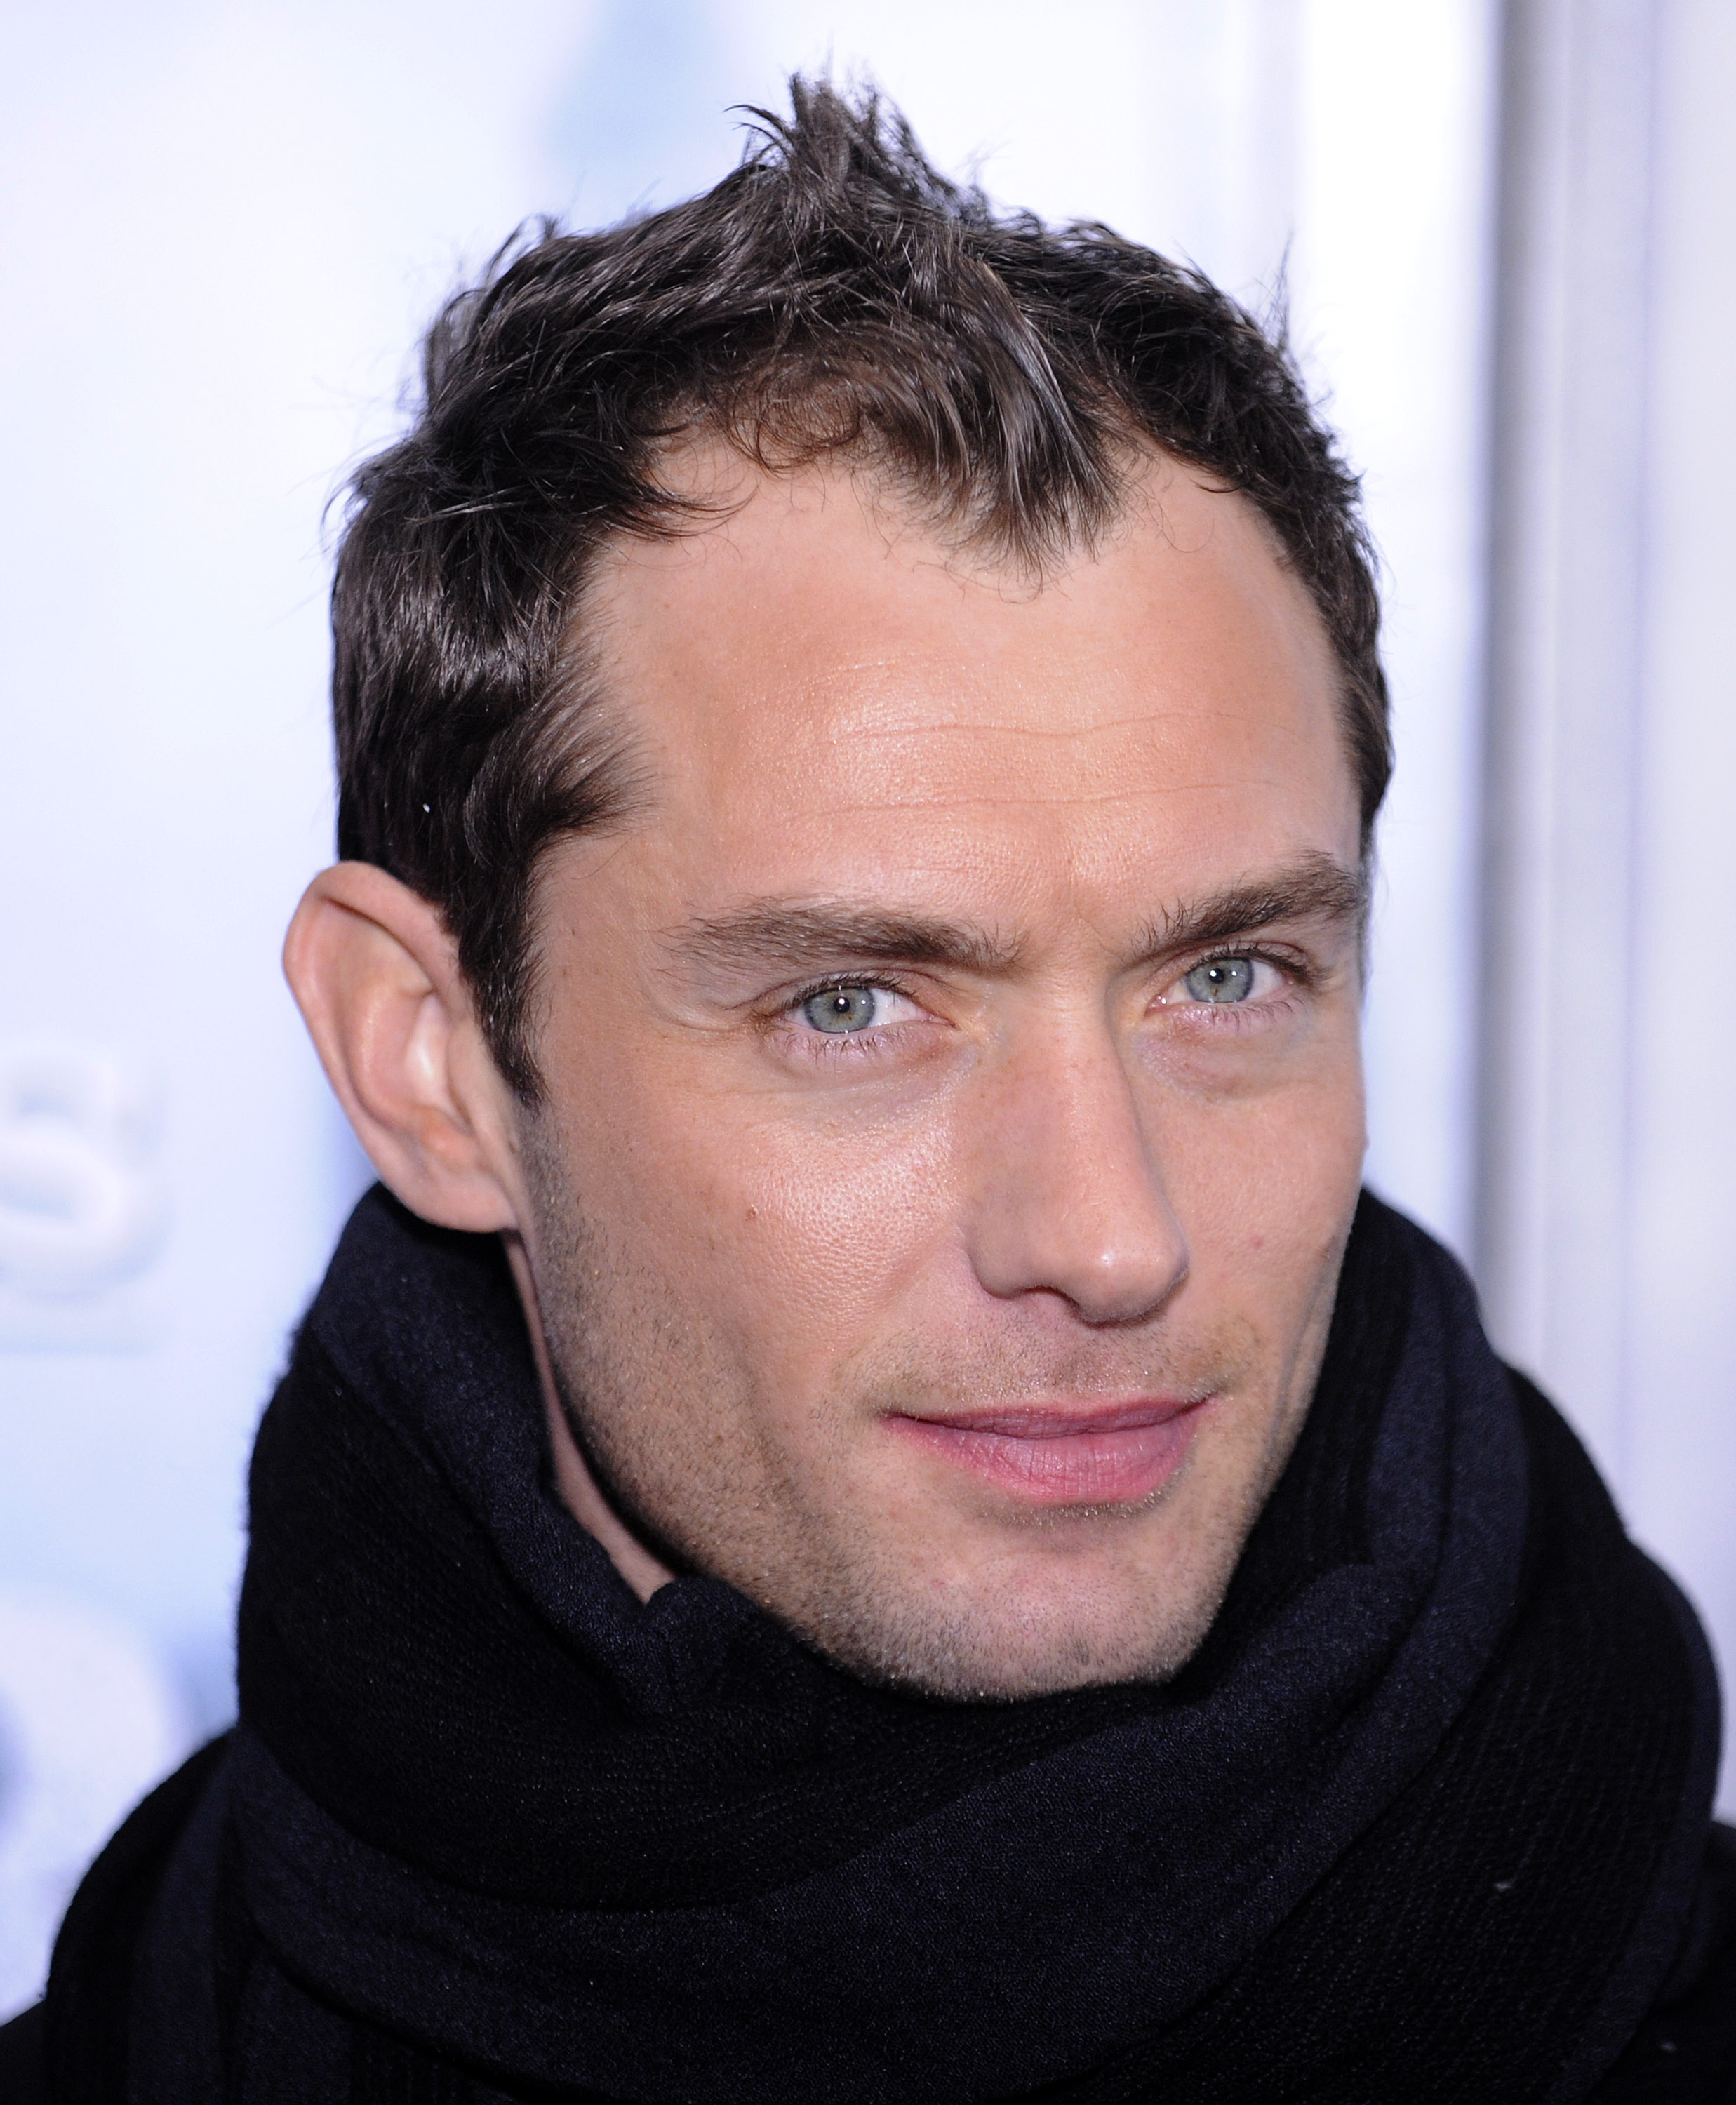 Actor Jude Law attends the premiere of 'Sherlock Holmes ' at Lincoln Center in New York, New York in this December 2009 file photo. Law has been nomin...